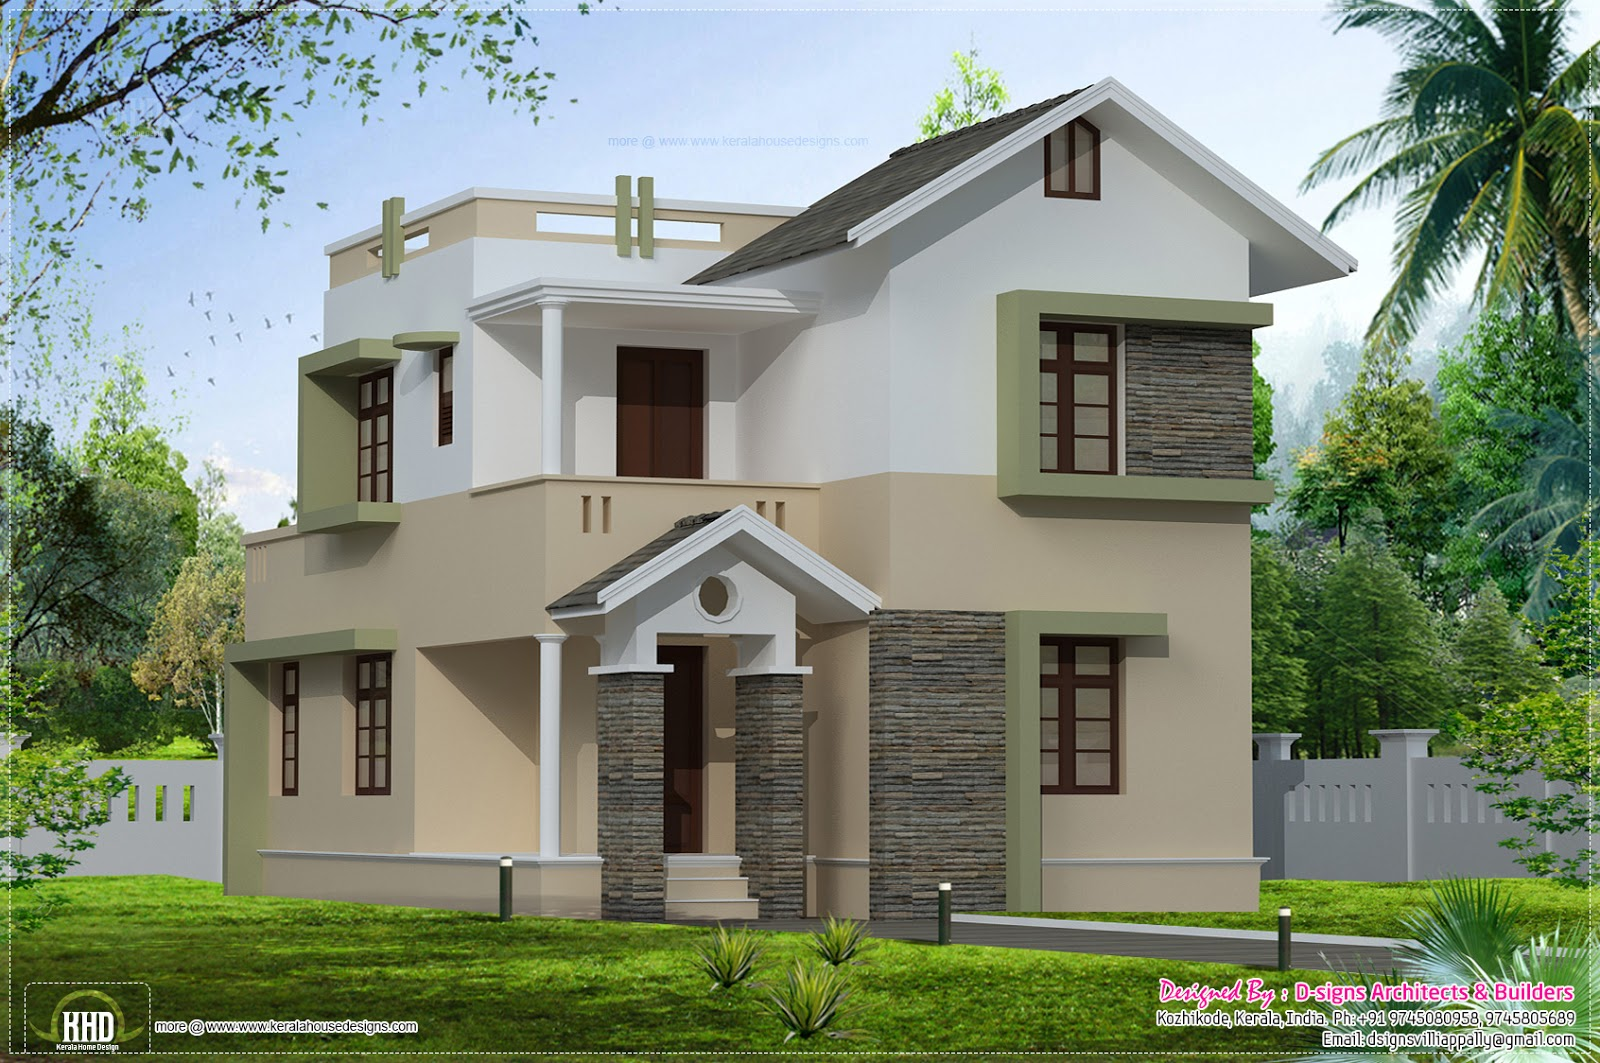 Front elevation of small houses home design and decor Indian small house design pictures